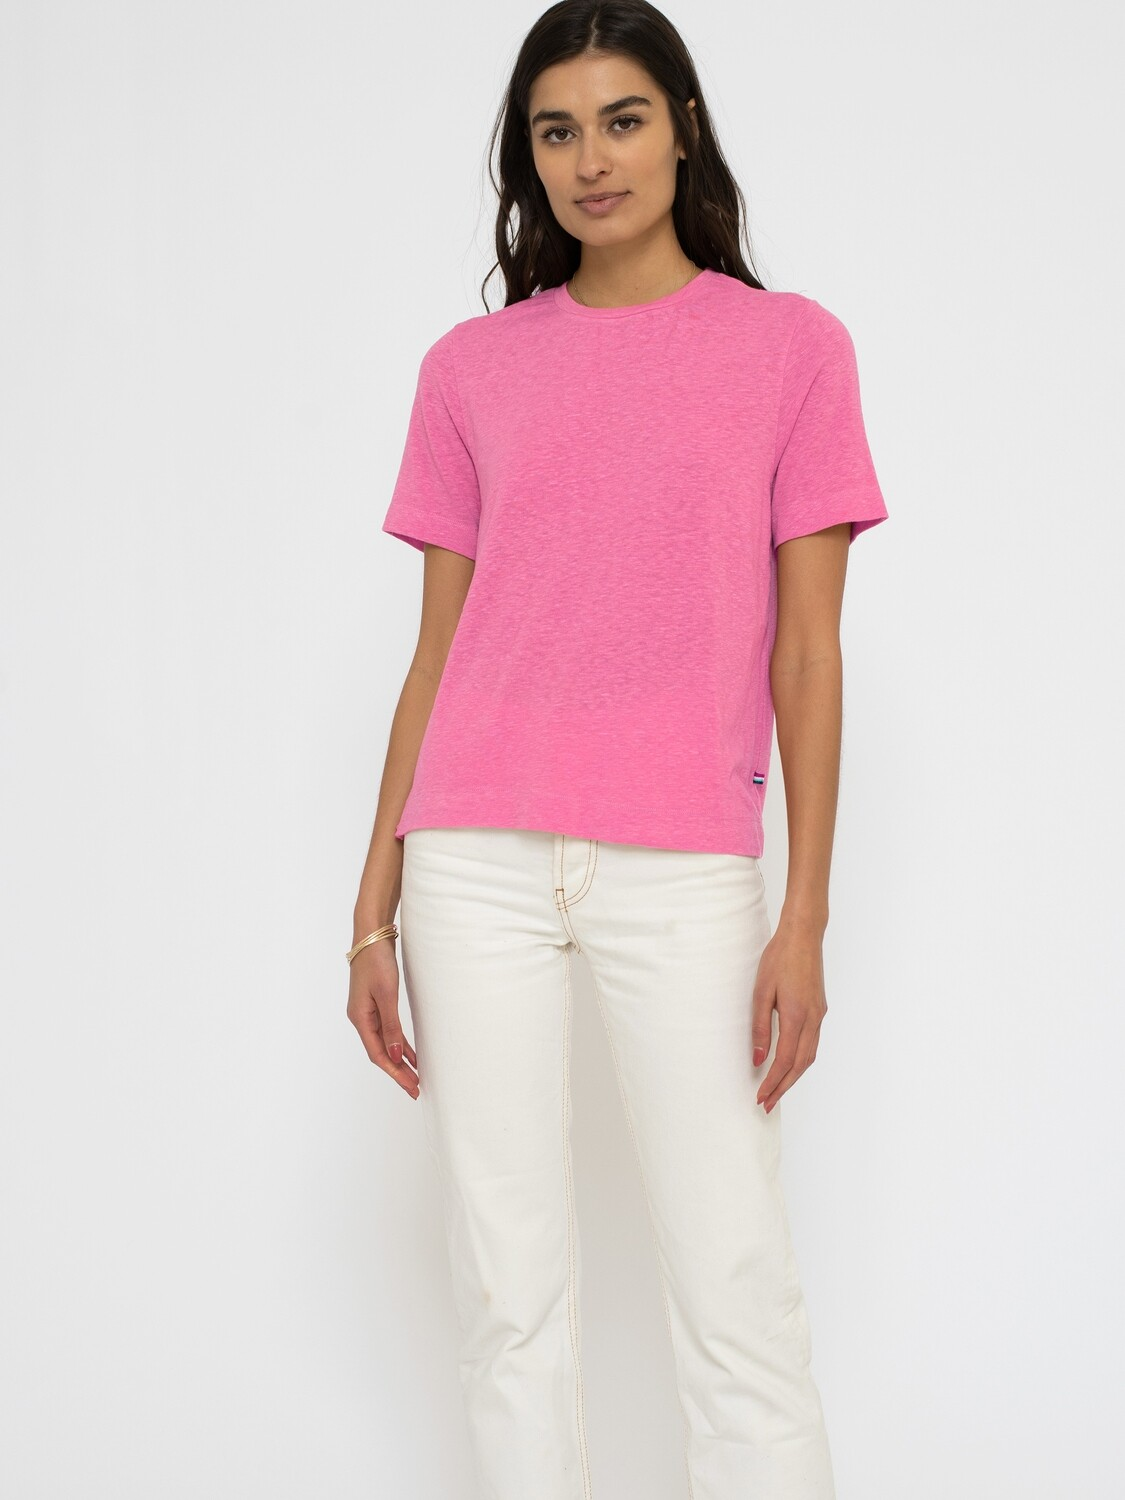 Sol Angeles, Eco Slub Tee, Taffy